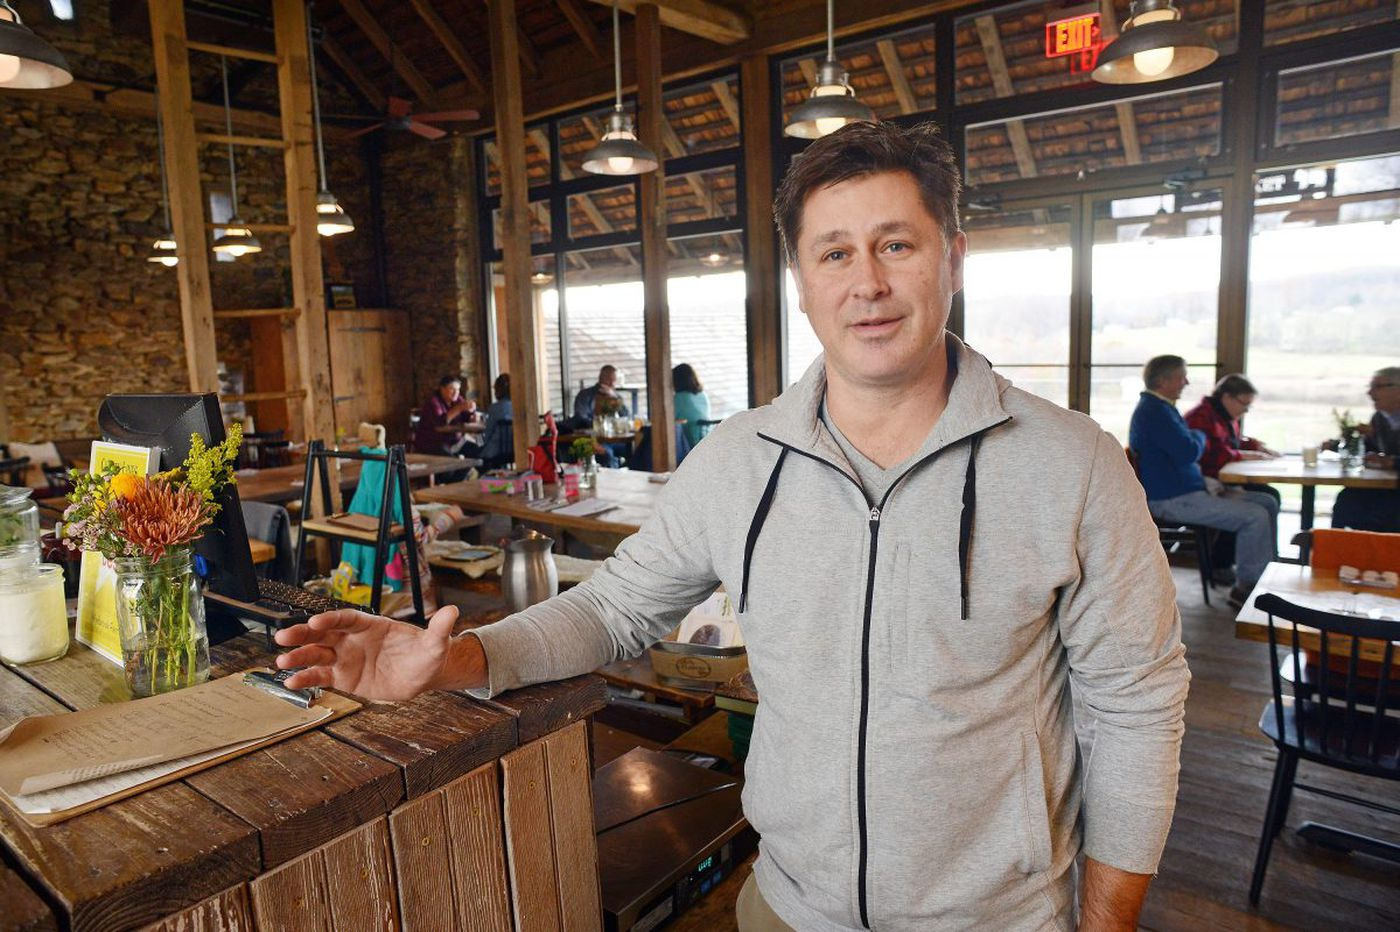 How red-tape morass closed Chesco farm's restaurant